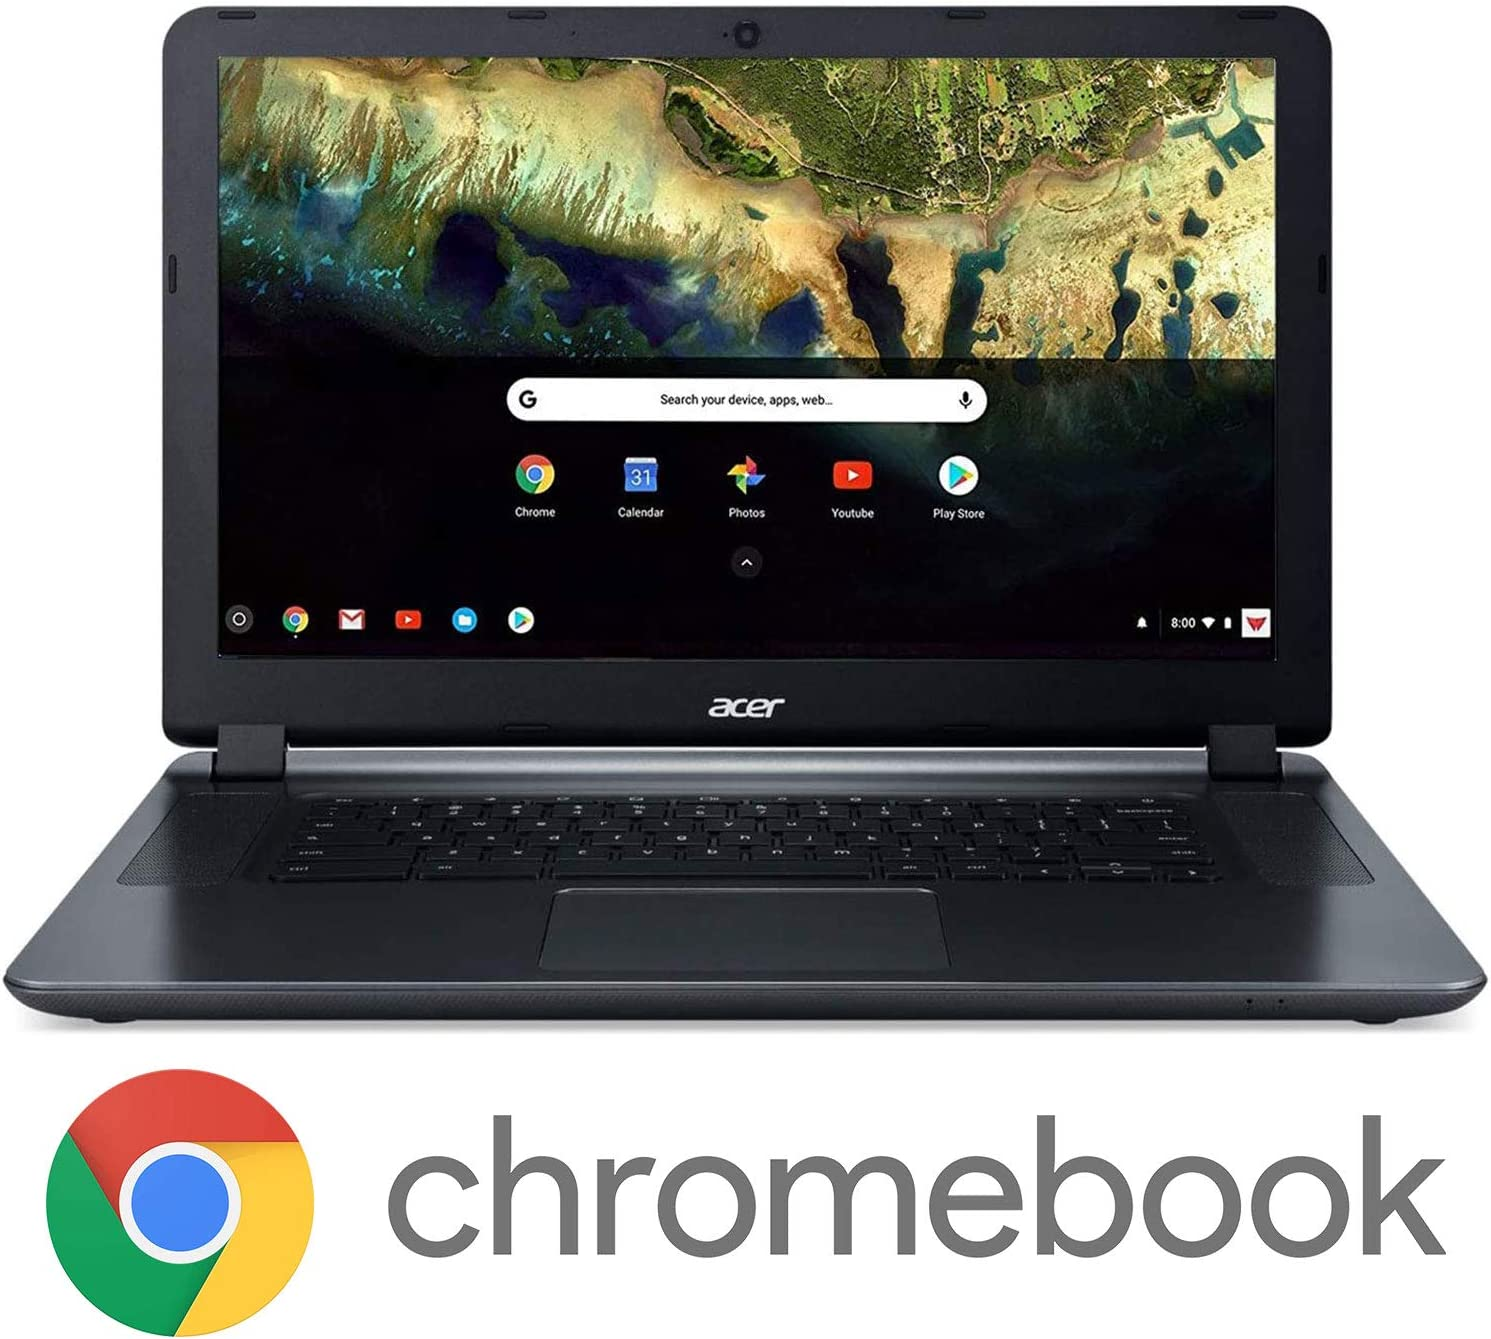 "Acer Chromebook 15 CB3-532-C8DF, Intel Celeron N3060, 15.6"" HD Display, 4GB LPDDR3, 16GB eMMC, 802.11ac WiFi 5, Google Chrome"